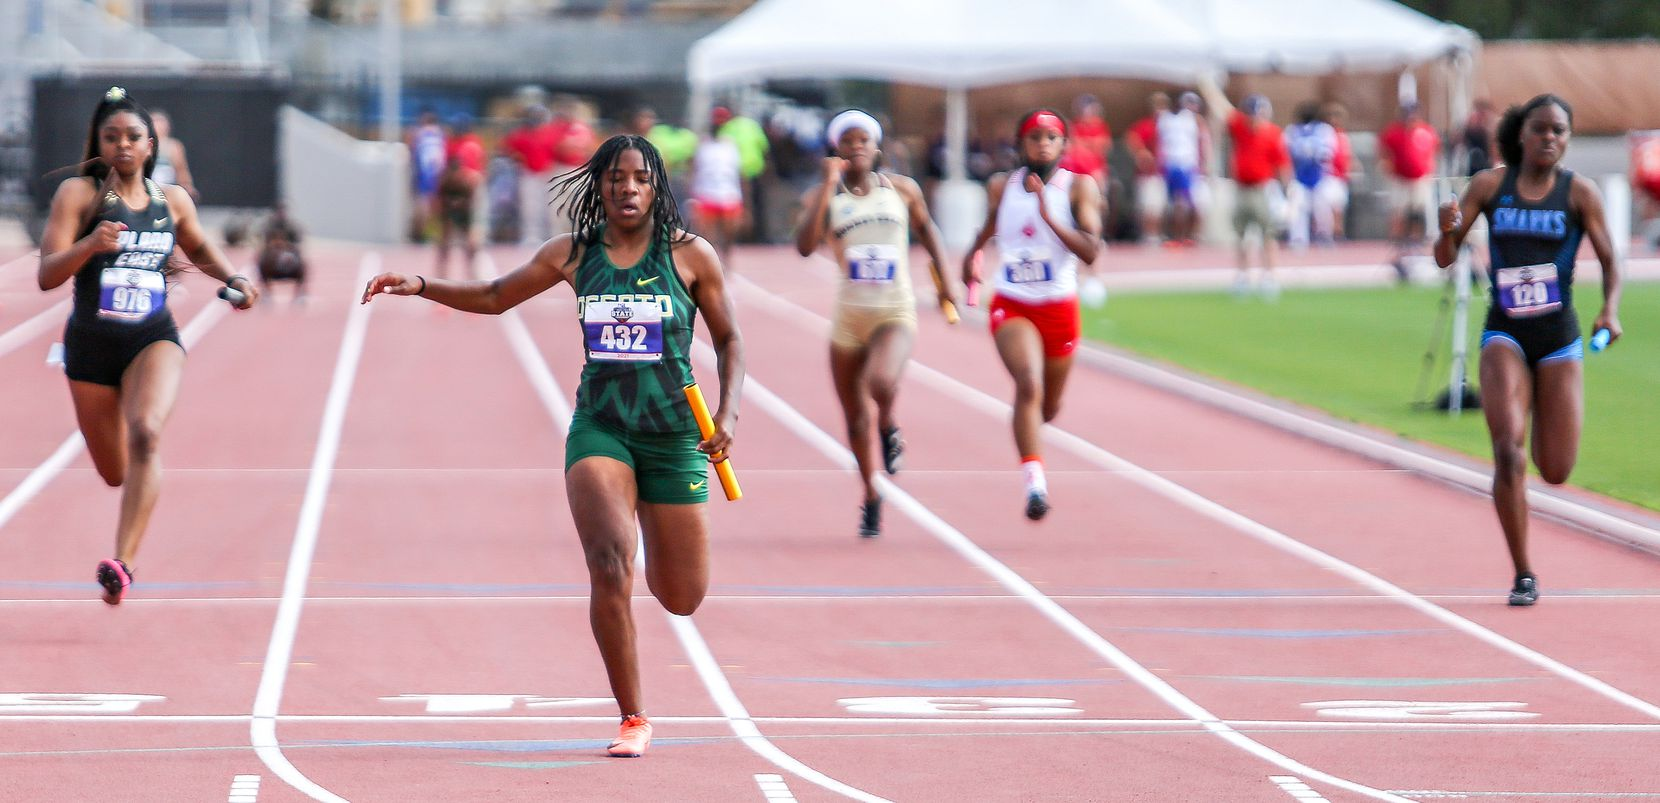 Mia Abraham of DeSoto crosses the finish line in third place in the 6A Girls 4x100 meter relay during the UIL state track meet at the Mike A. Myers Stadium, at the University of Texas on May 8, 2021 in Austin, Texas.